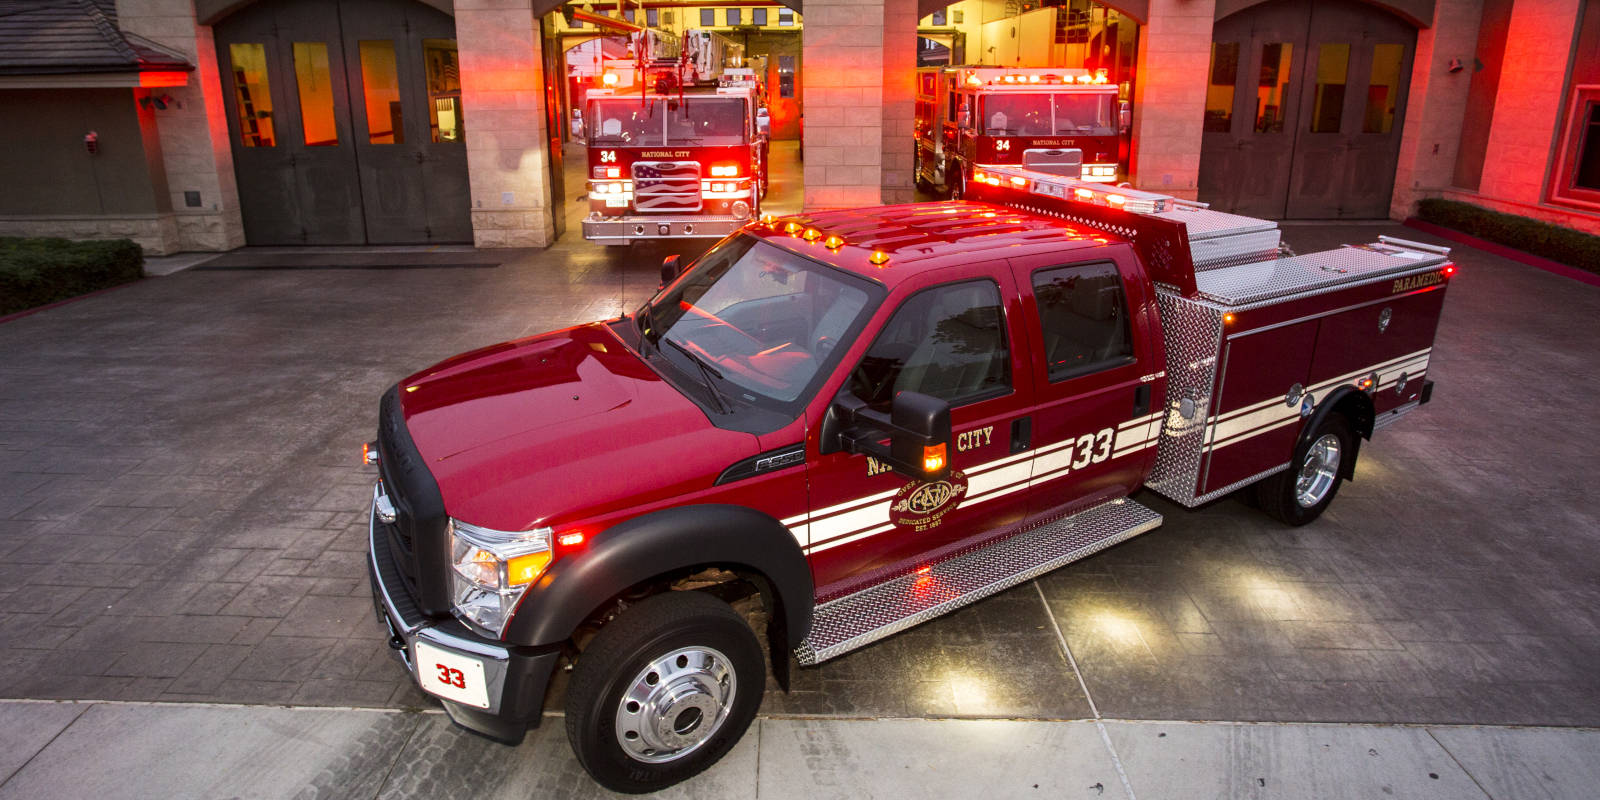 National City Firematic patrol in front of the station